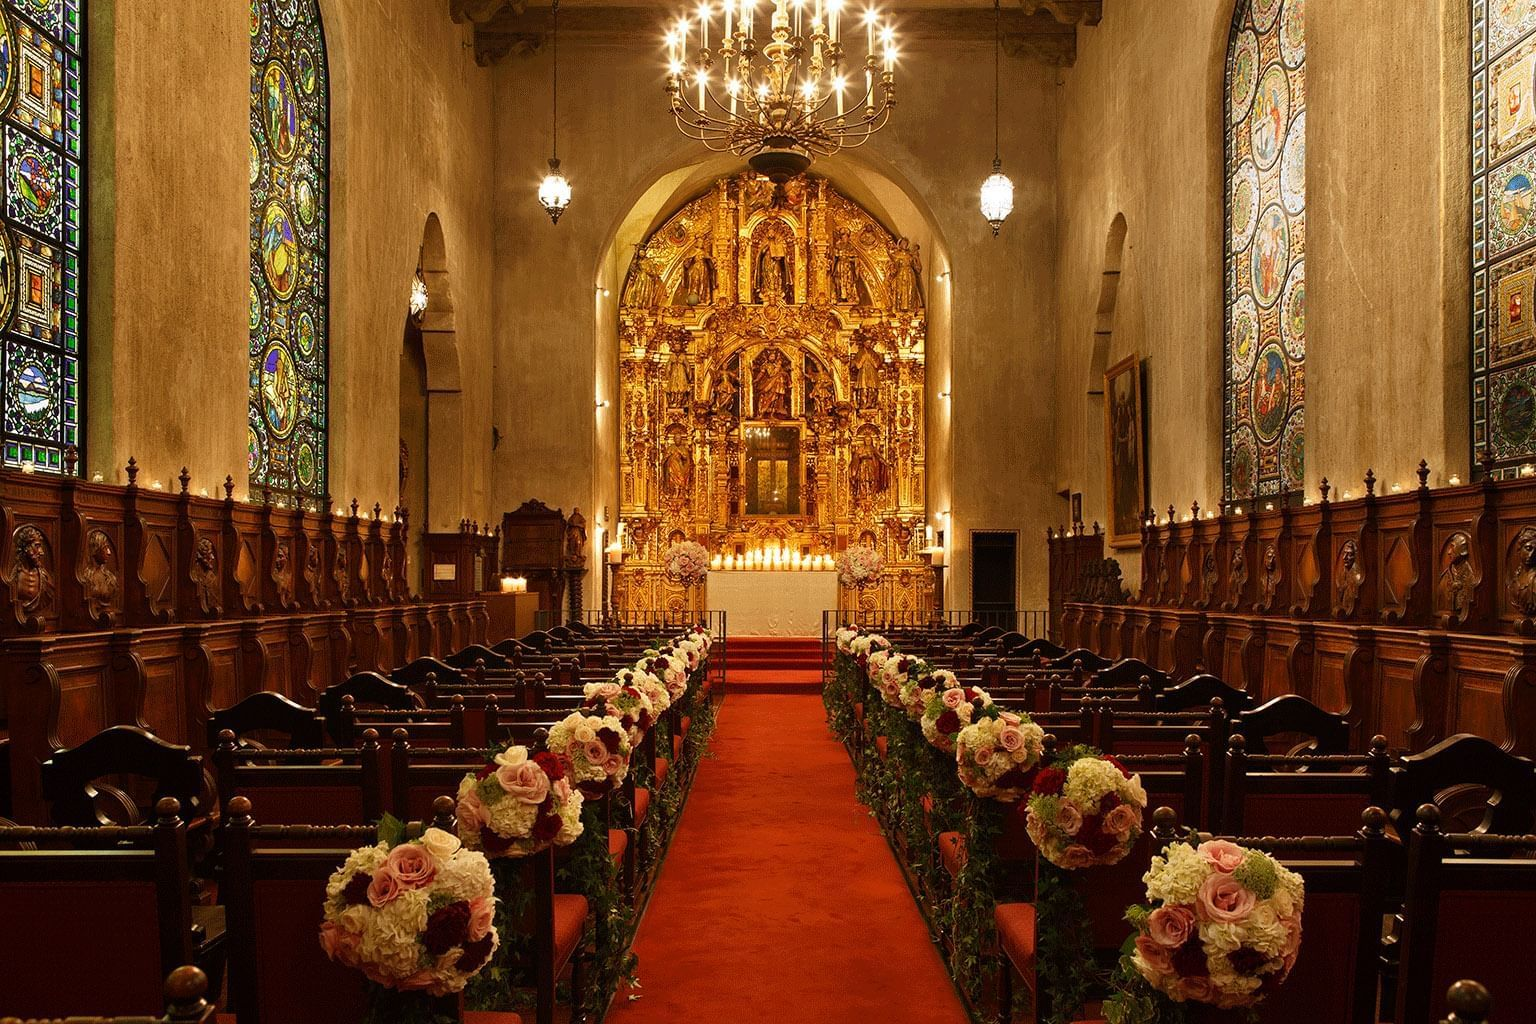 St. Francis of Assisi chapel with flowers decorating the aisle